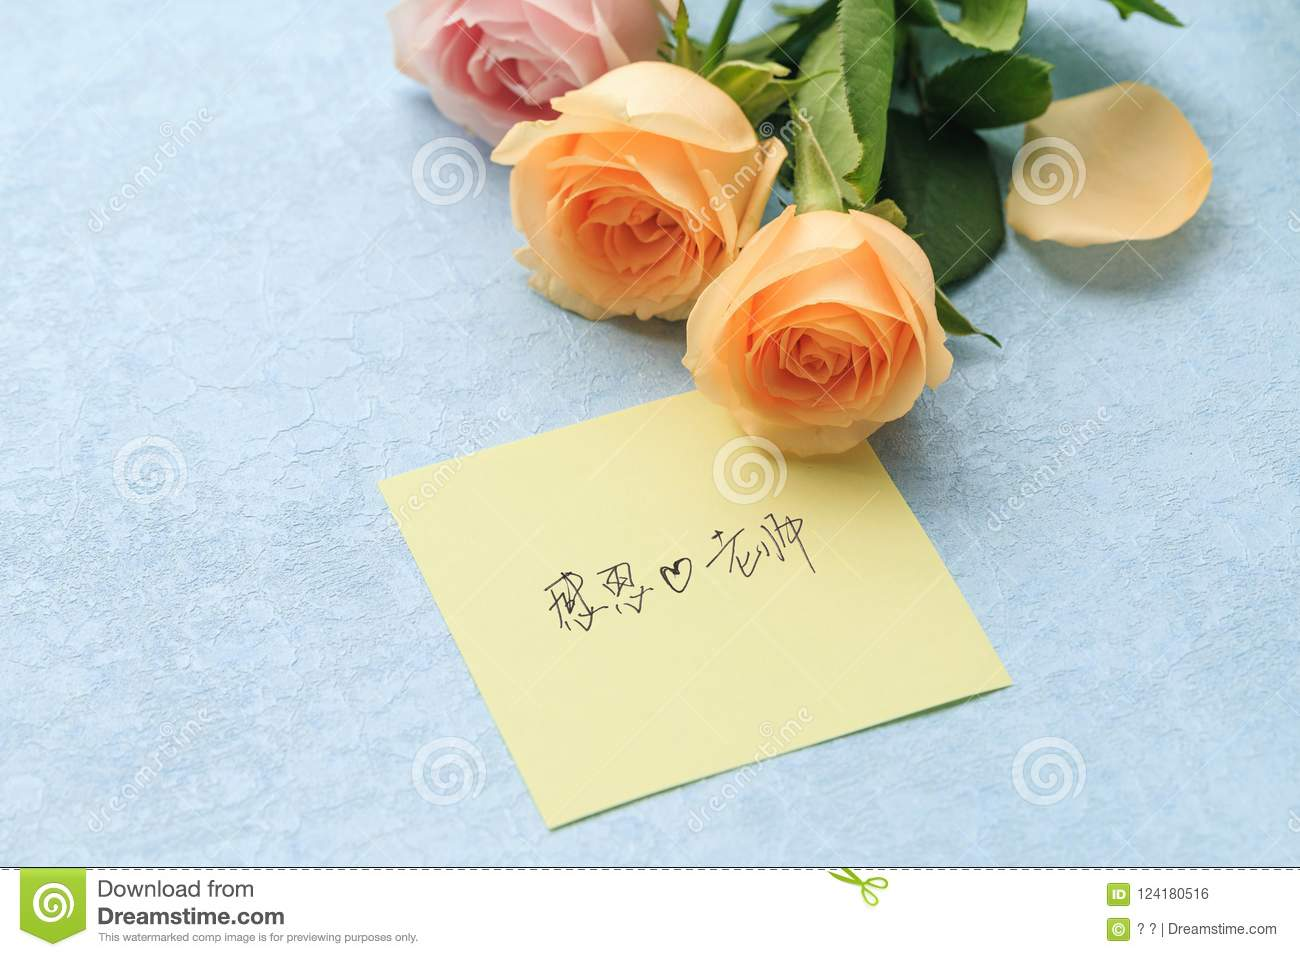 Best Wishes For Teachers Day Stock Photo Image Of Love Greeting